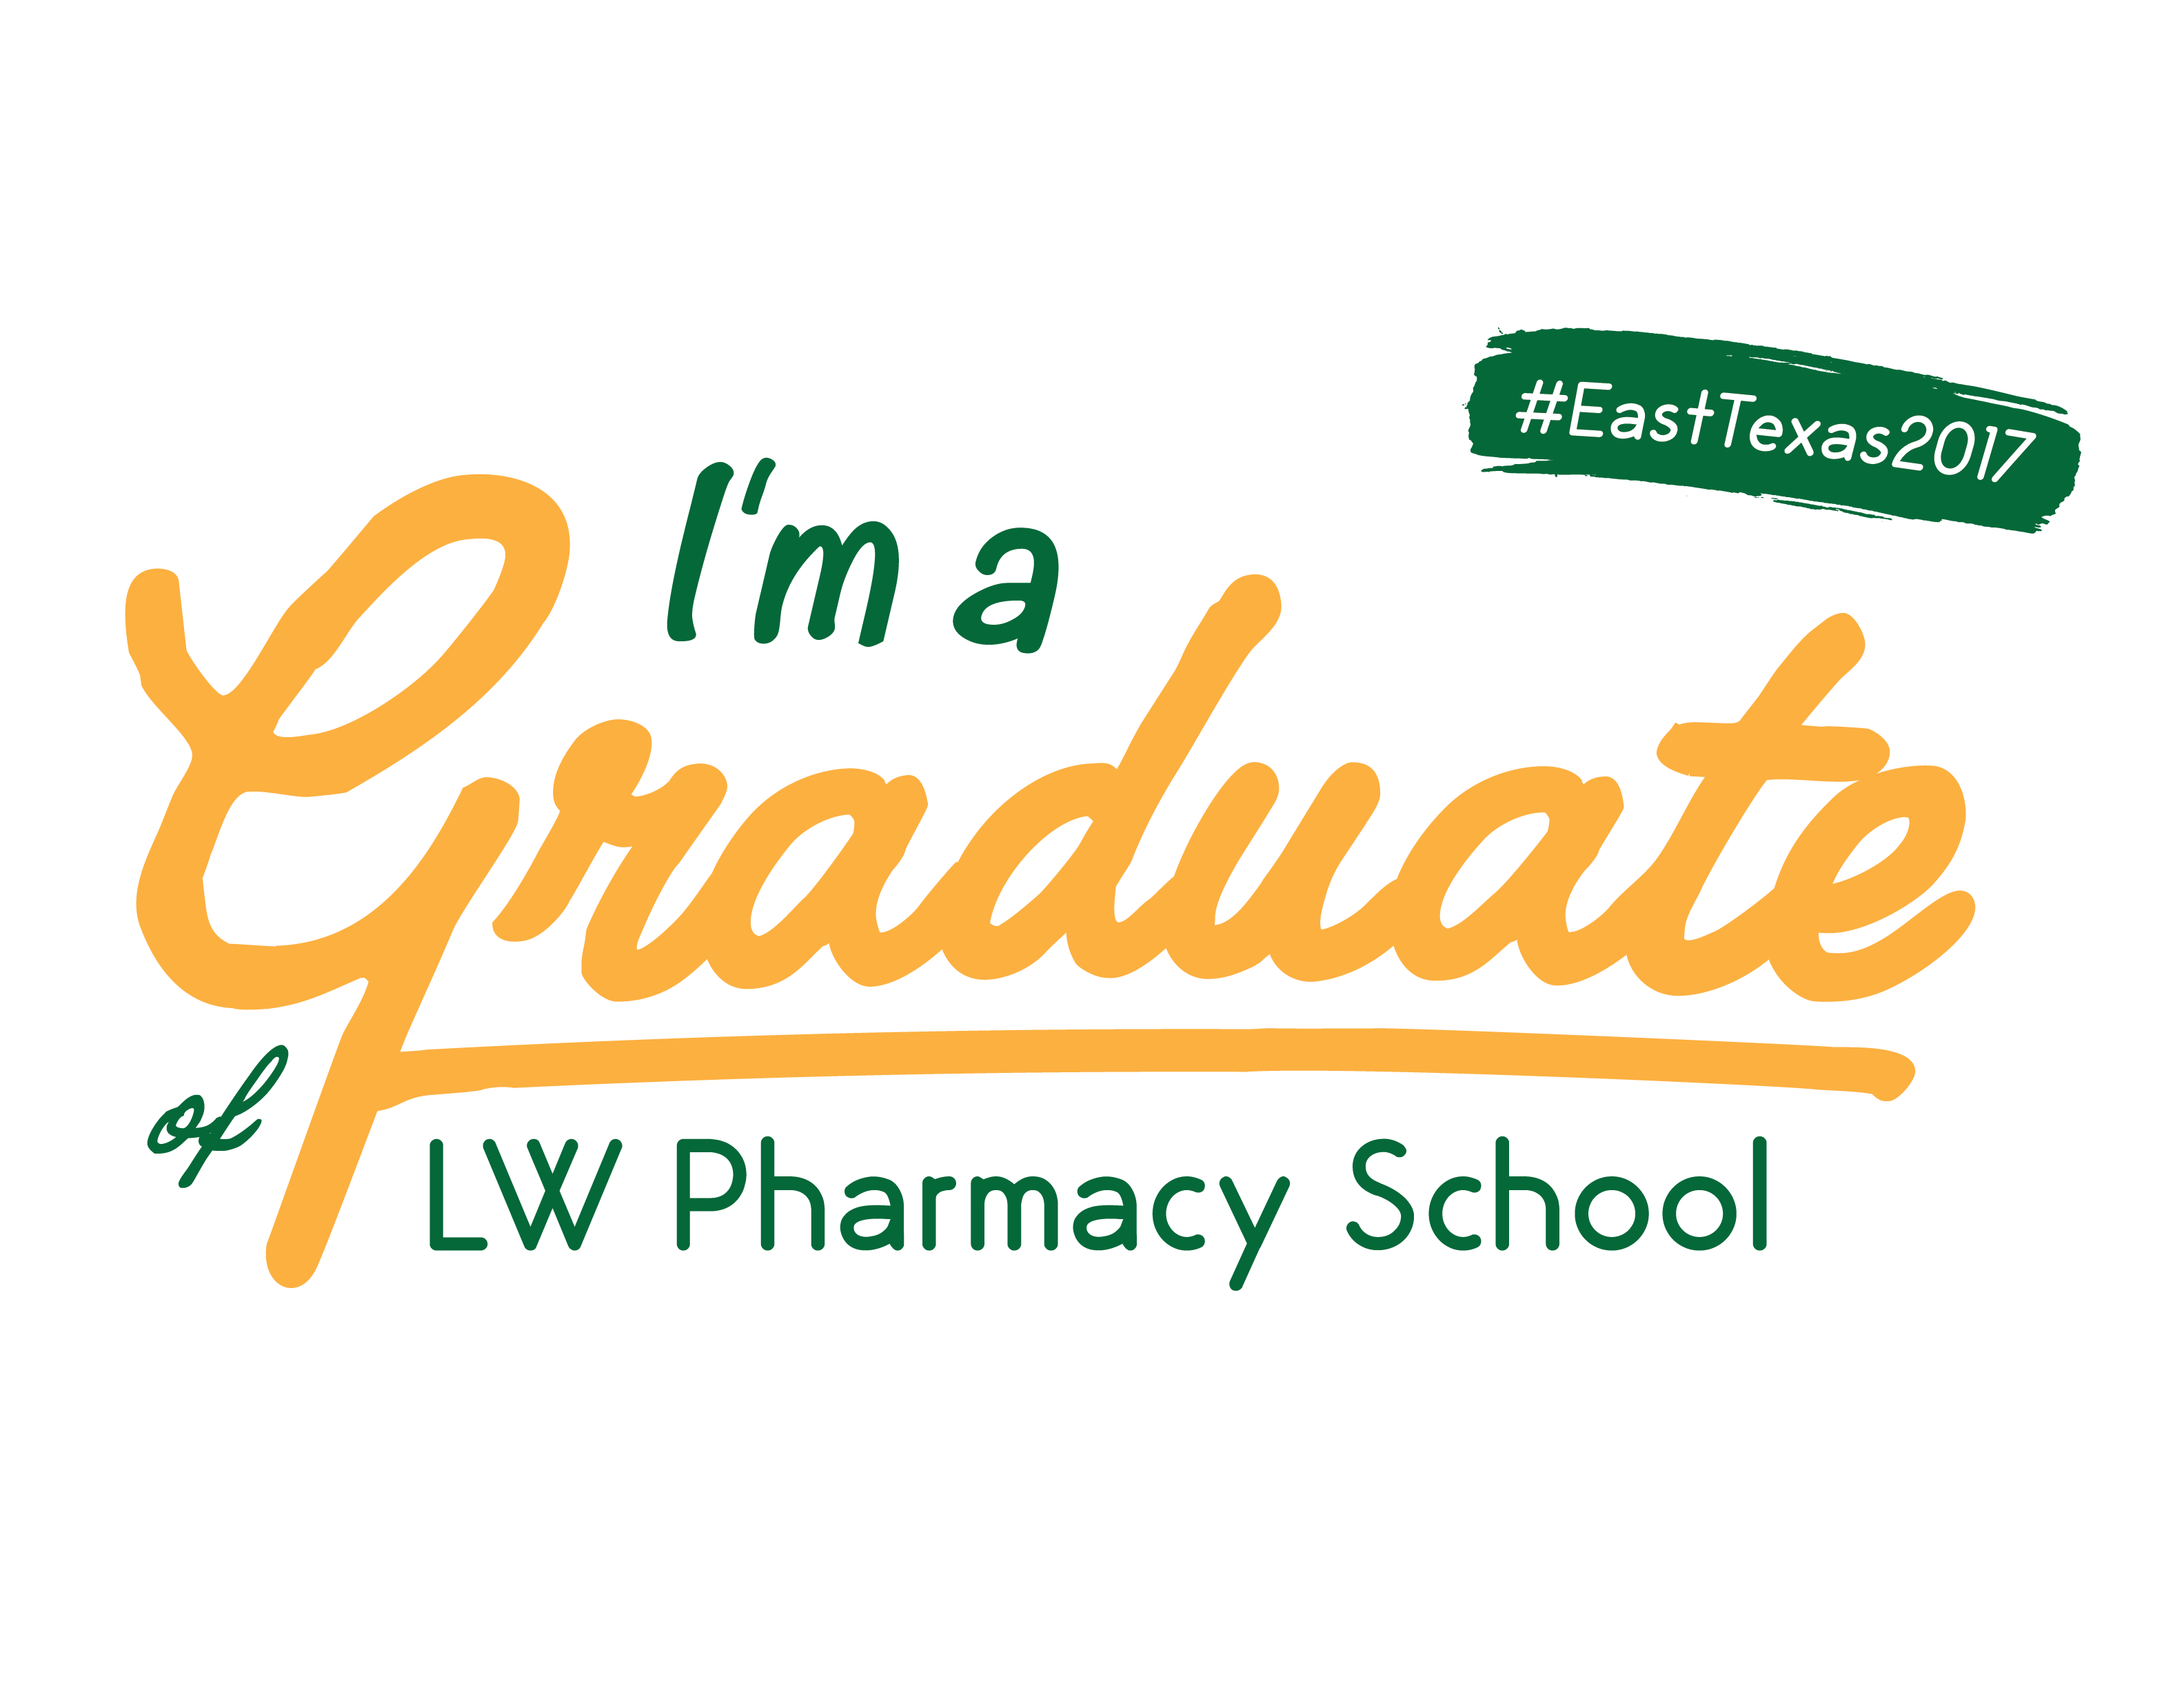 LW Pharmacy School